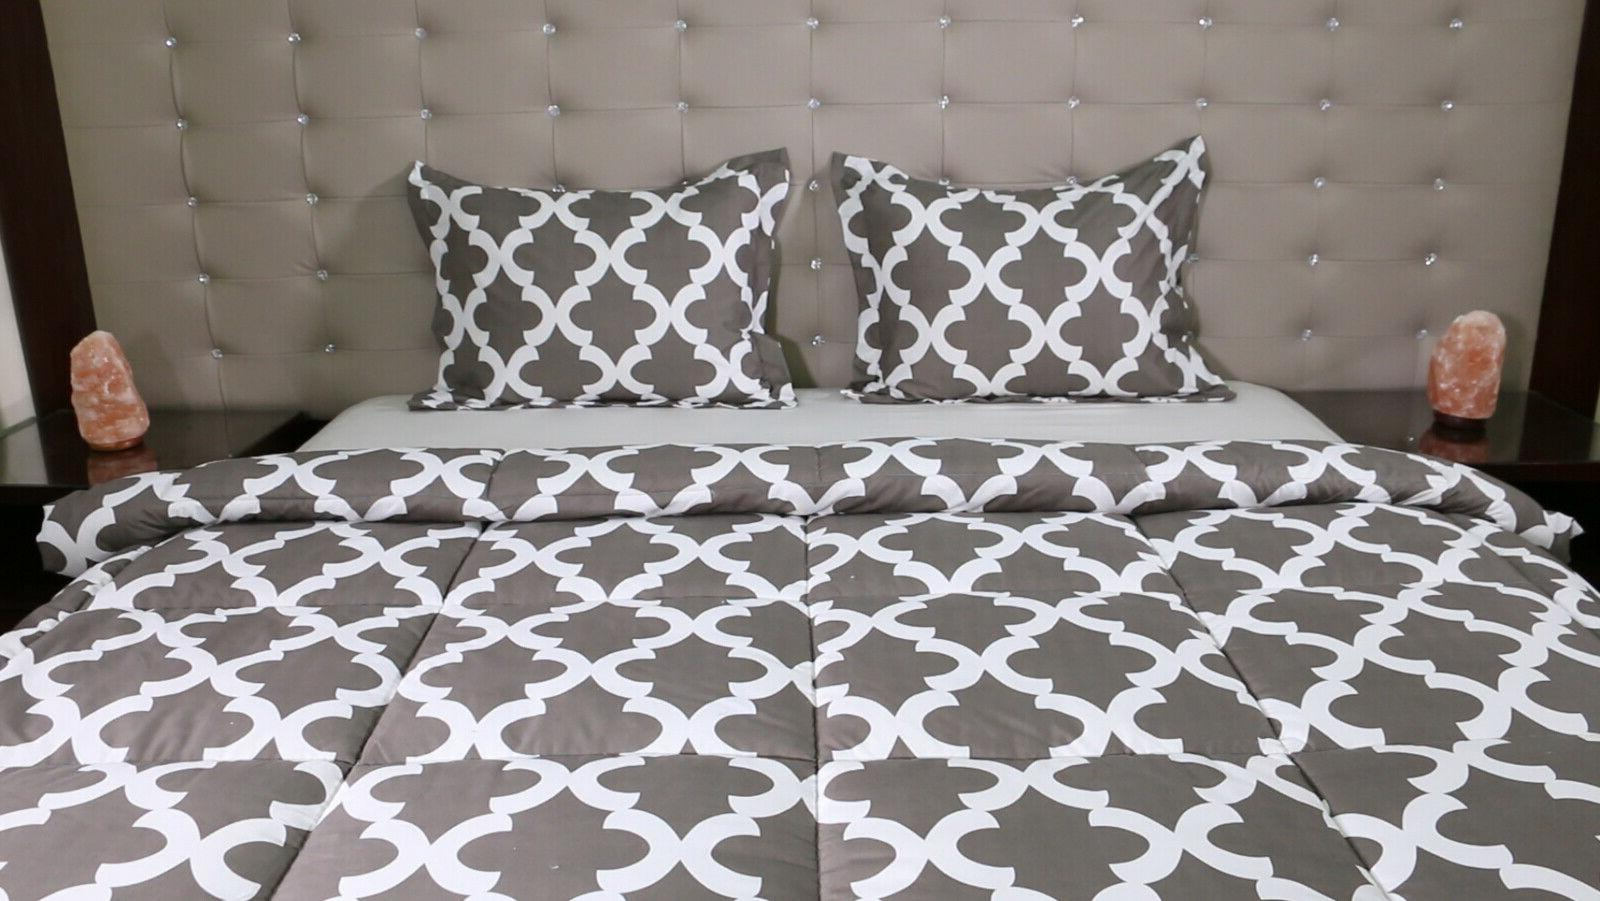 Utopia Bedding Printed Queen Set with Pillow